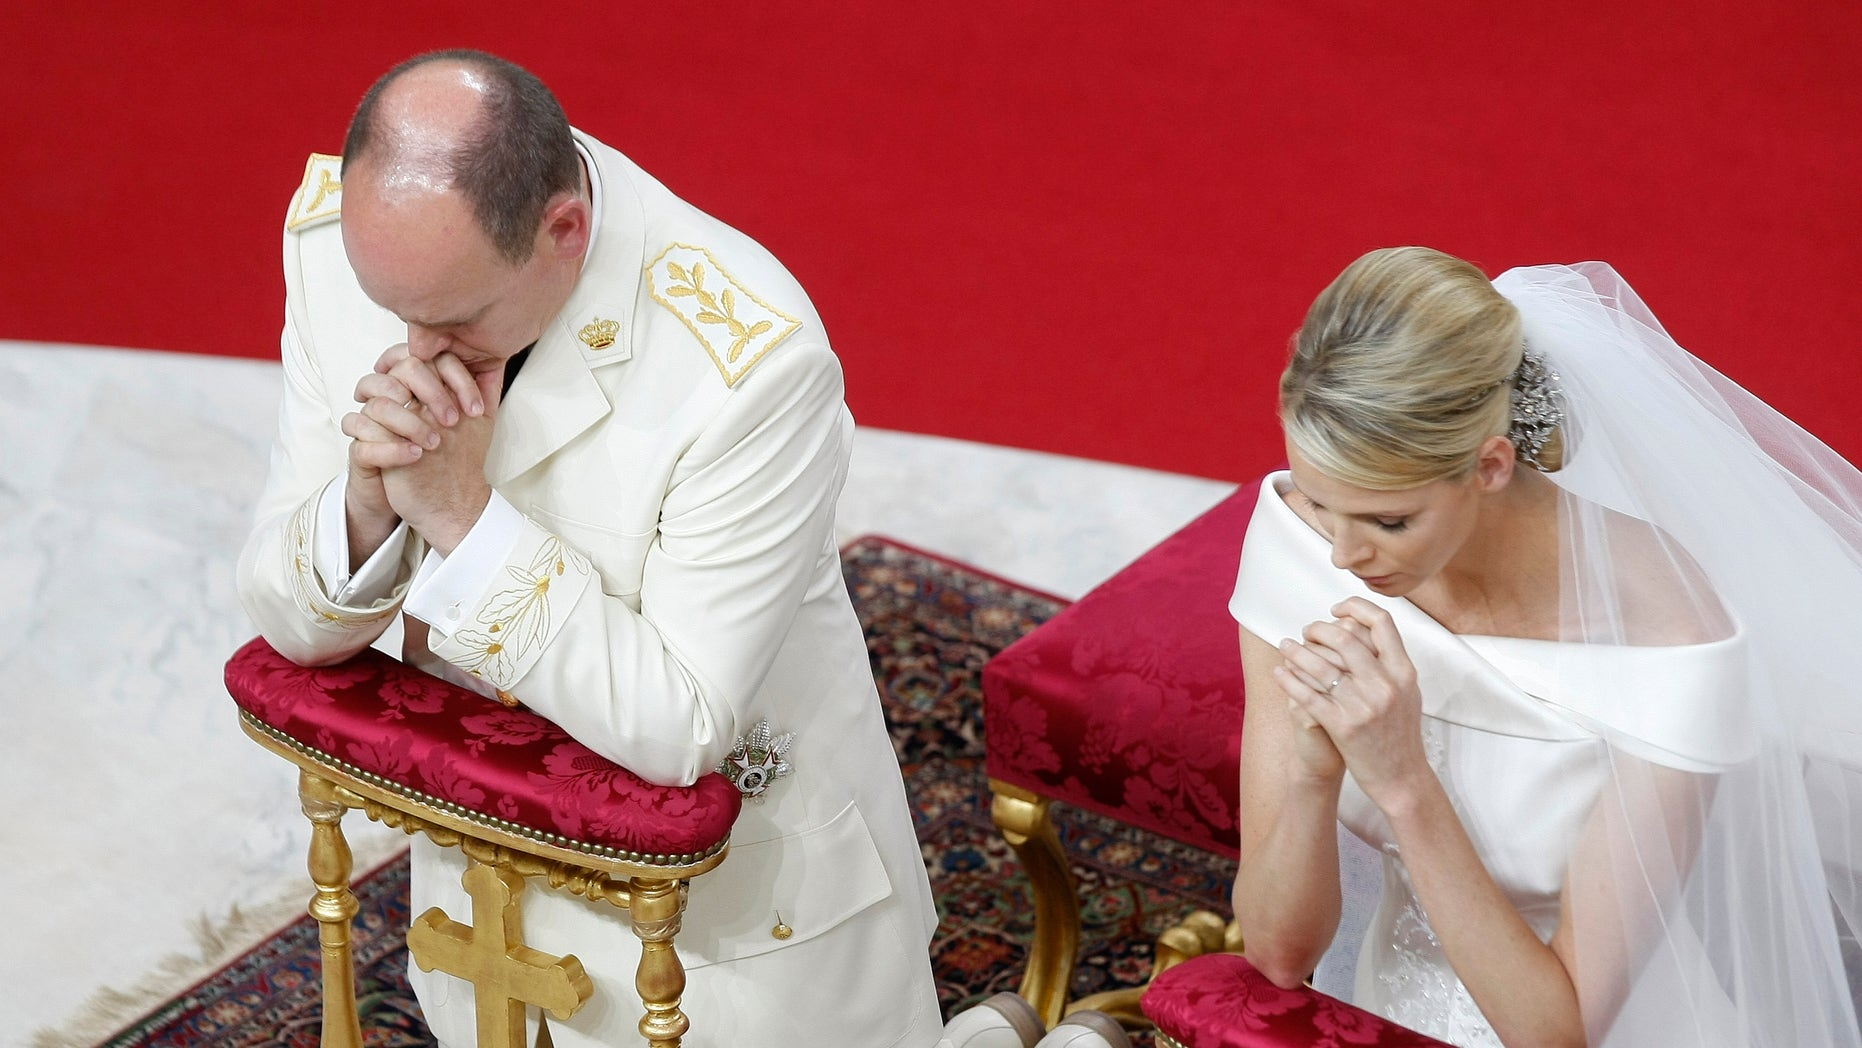 Prince Albert II of Monaco and Charlene Princess of Monaco kneel in prayer during their religious wedding ceremony at the Monaco palace, Saturday, July 2, 2011.